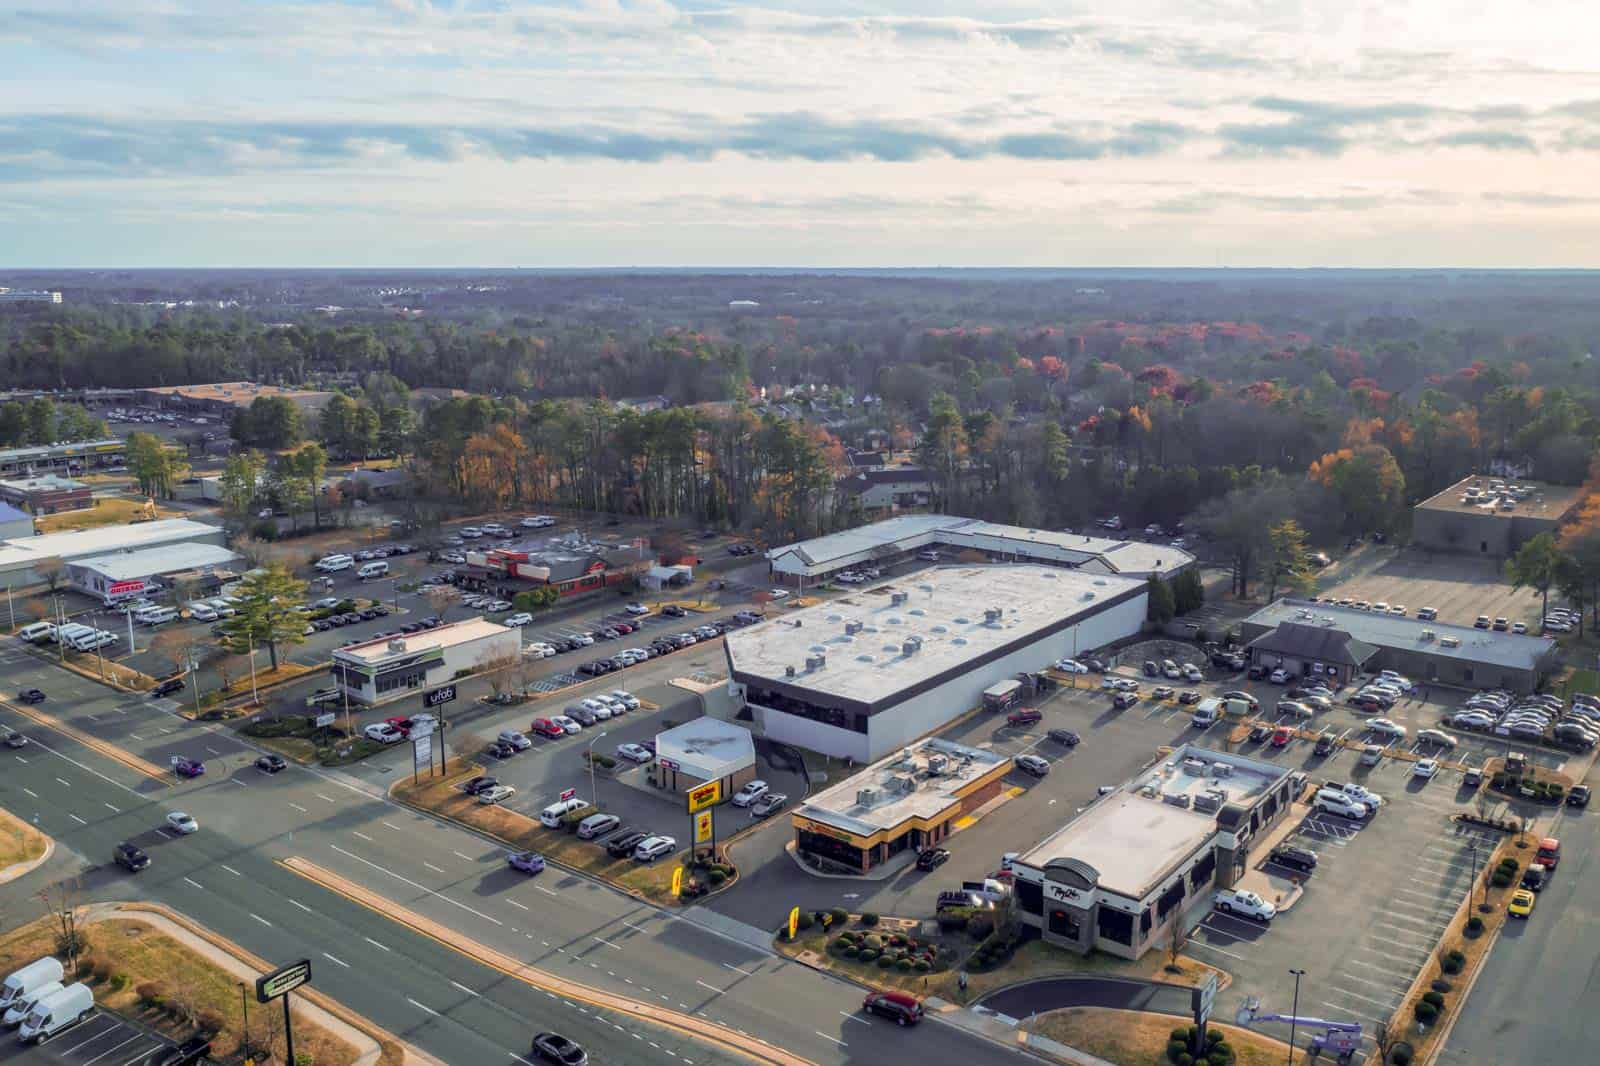 aerial drone photo of commercial real estate property in Richmond, VA